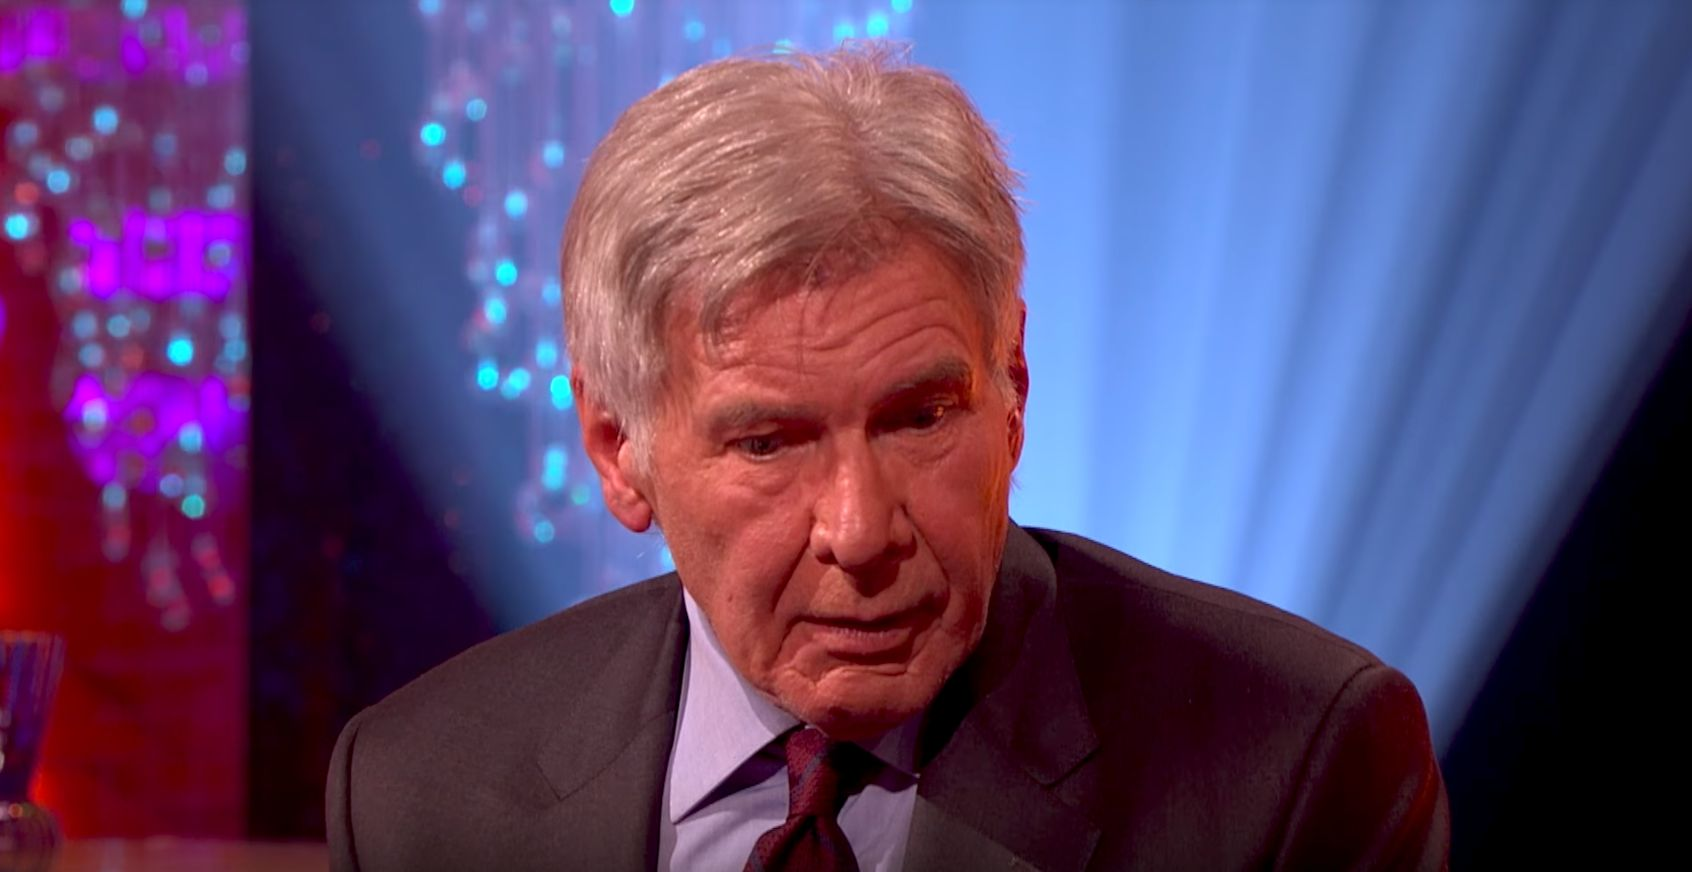 Watch Harrison Ford forget Ryan Gosling's name